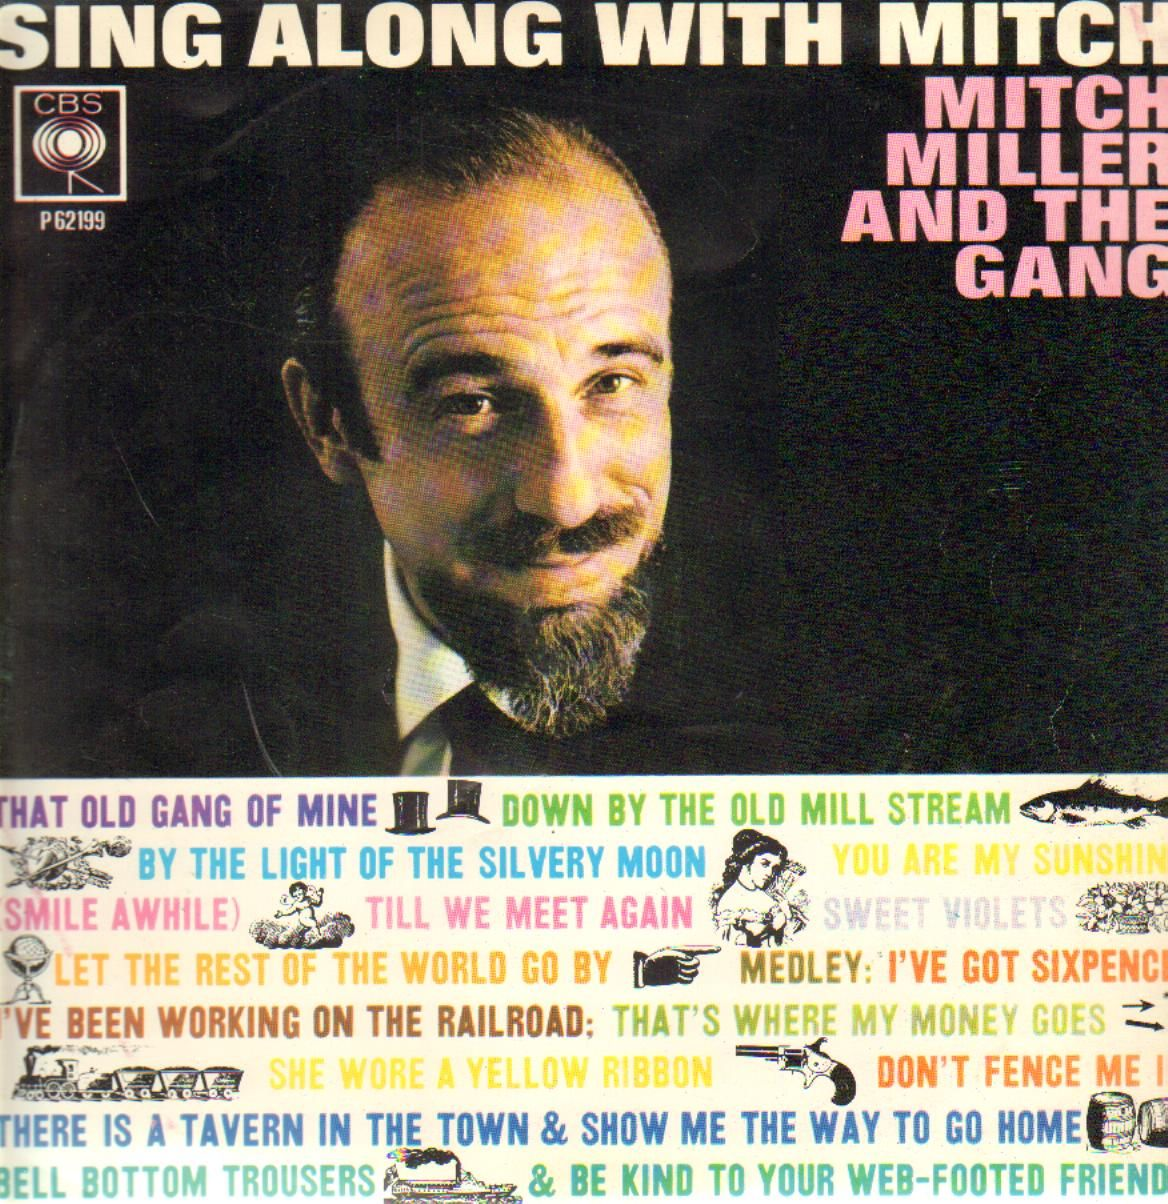 Mitch Miller And The Gang - Santa's Sing Along